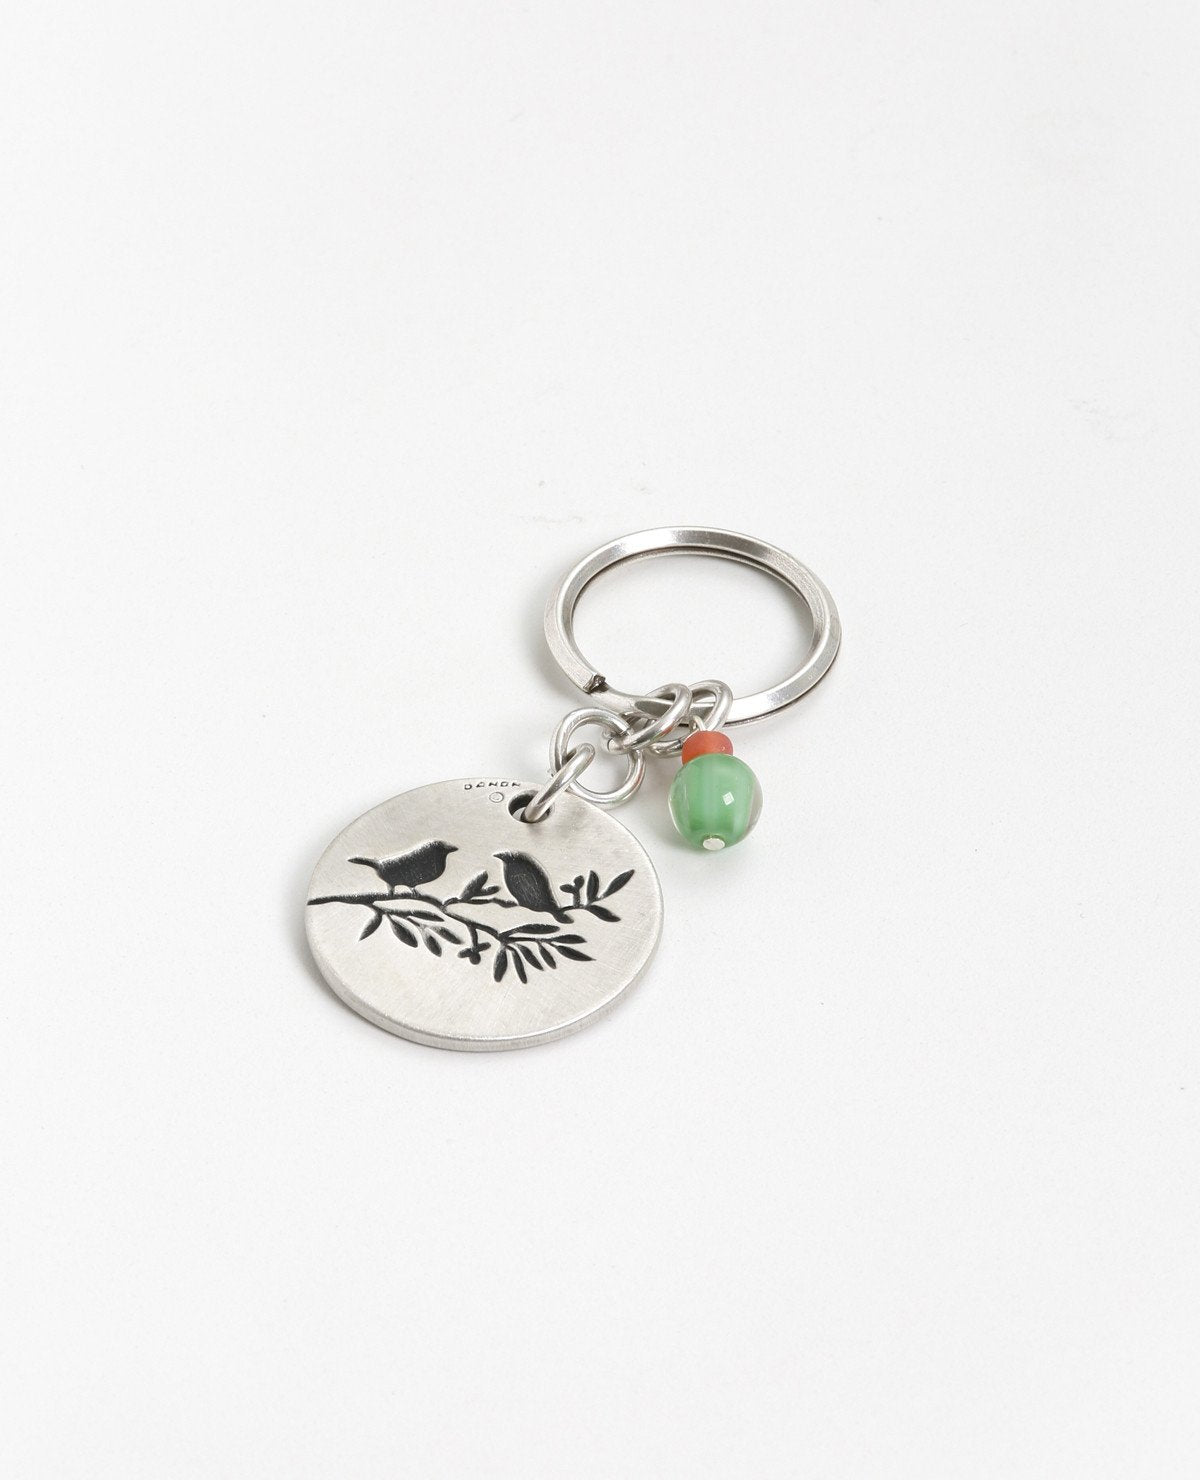 "The freedom to be exactly who you are! An authentic and captivating keychain that you should always have ready to hand to someone special. The keychain is designed as a circle with the words ""Freedom is a state of mind"" written on one side, and on the other a drawing of a pair of birds perched on a tree branch. The circle is connected to the keyring with three strong rings. The top one of the three has charming green and orange beads hanging from it. Simple, precise, beautiful and oh so significant. The key"